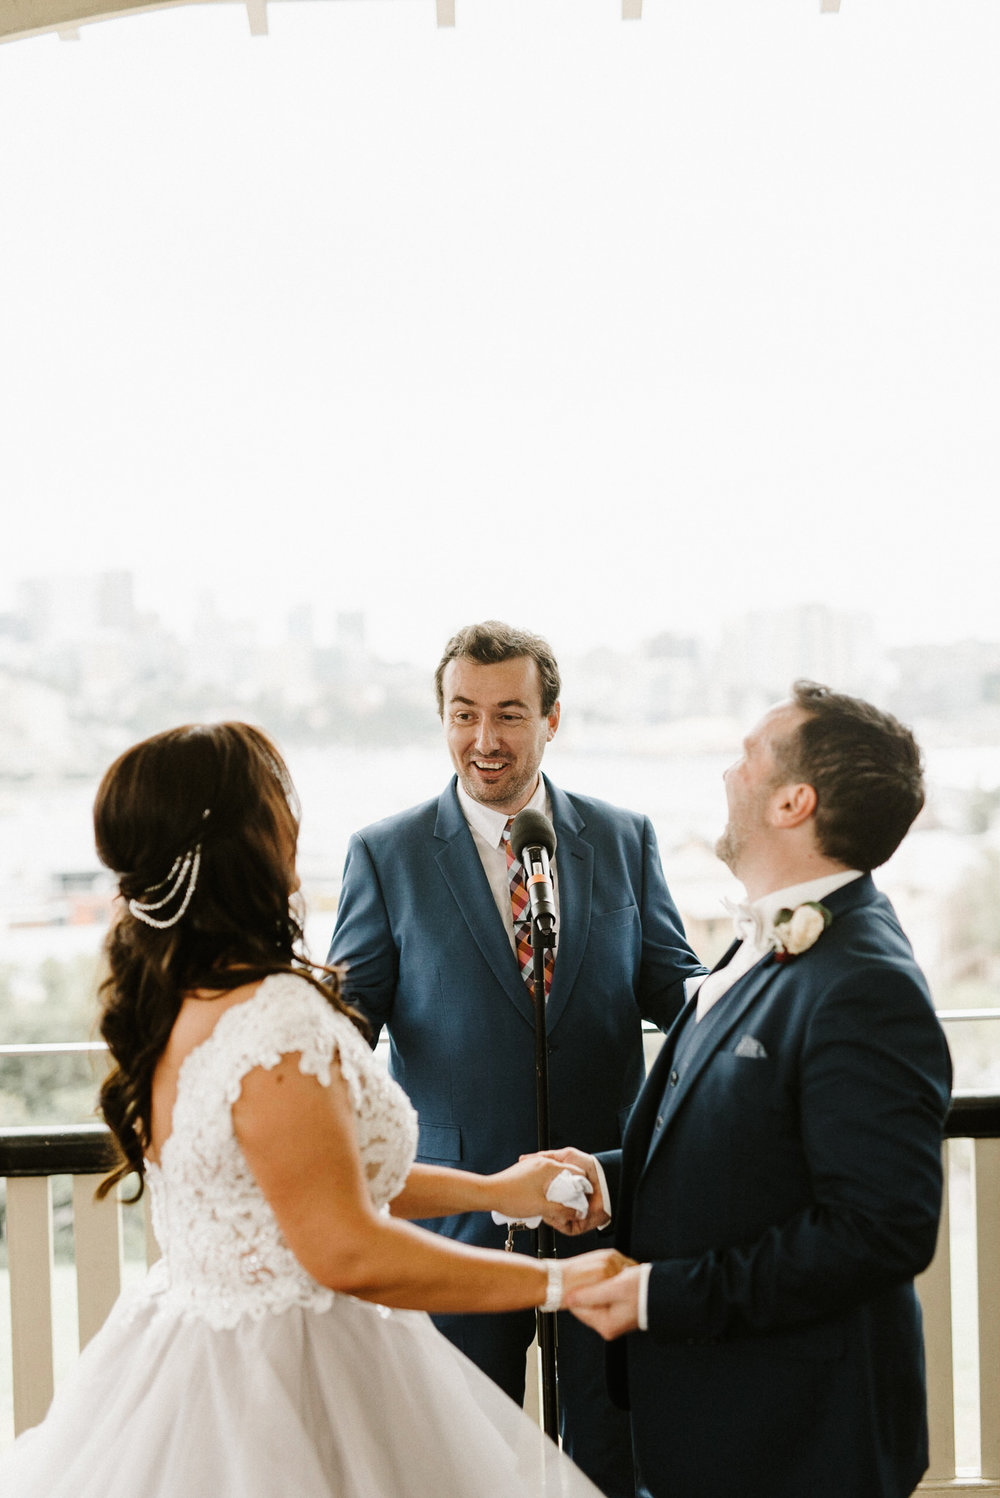 Sydney Wedding Photographer (28 of 103).jpg